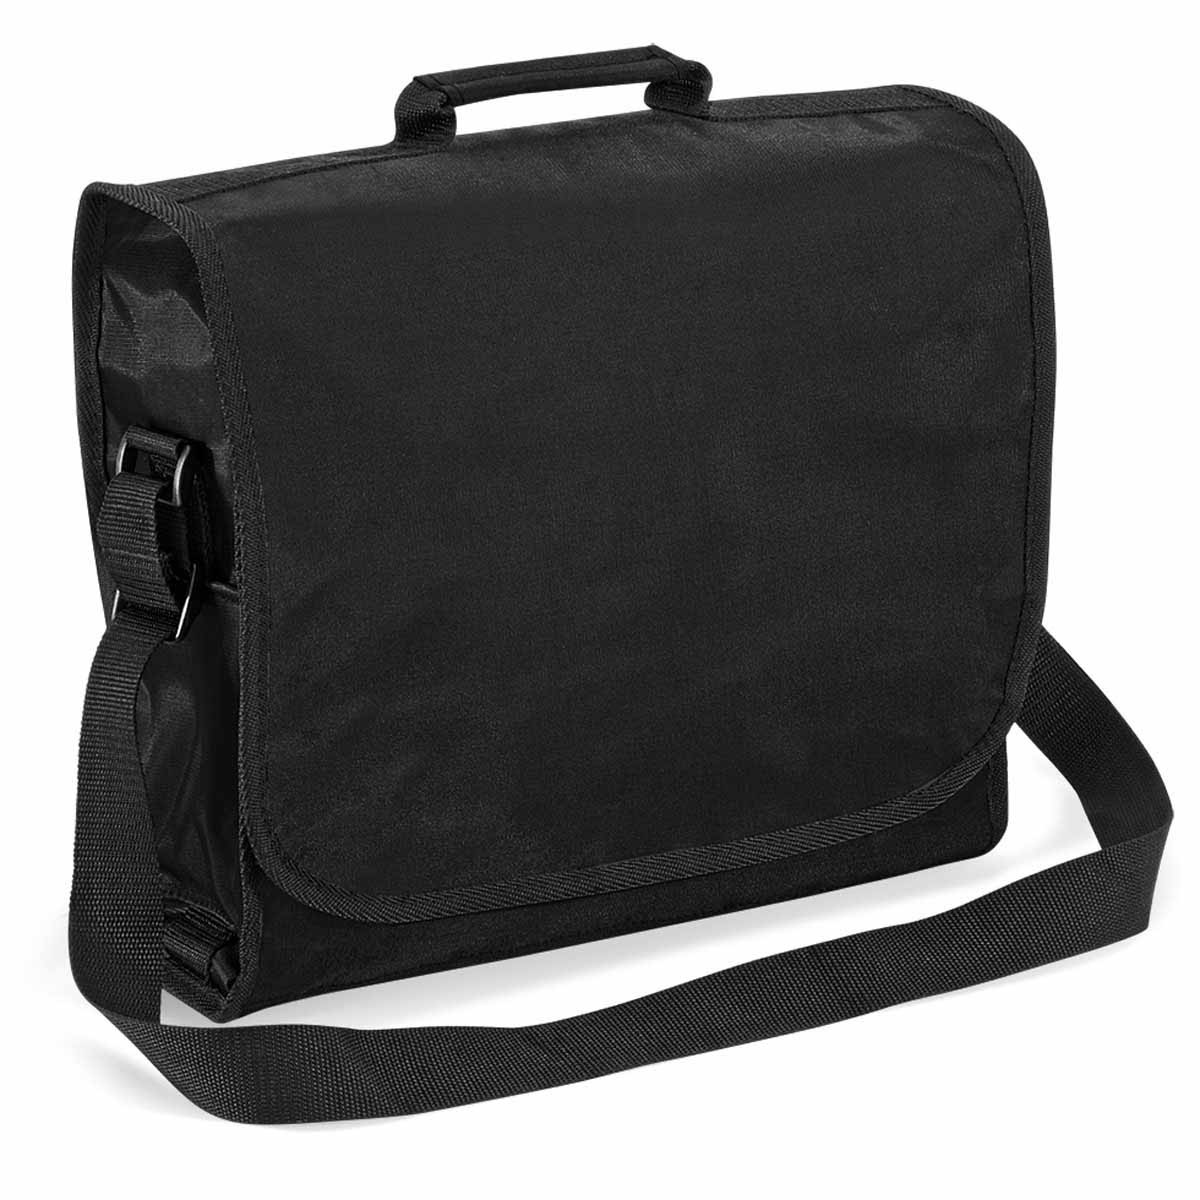 Sacoche bandoulière porte documents - DOCUMENT BAG - QD90 - Noir